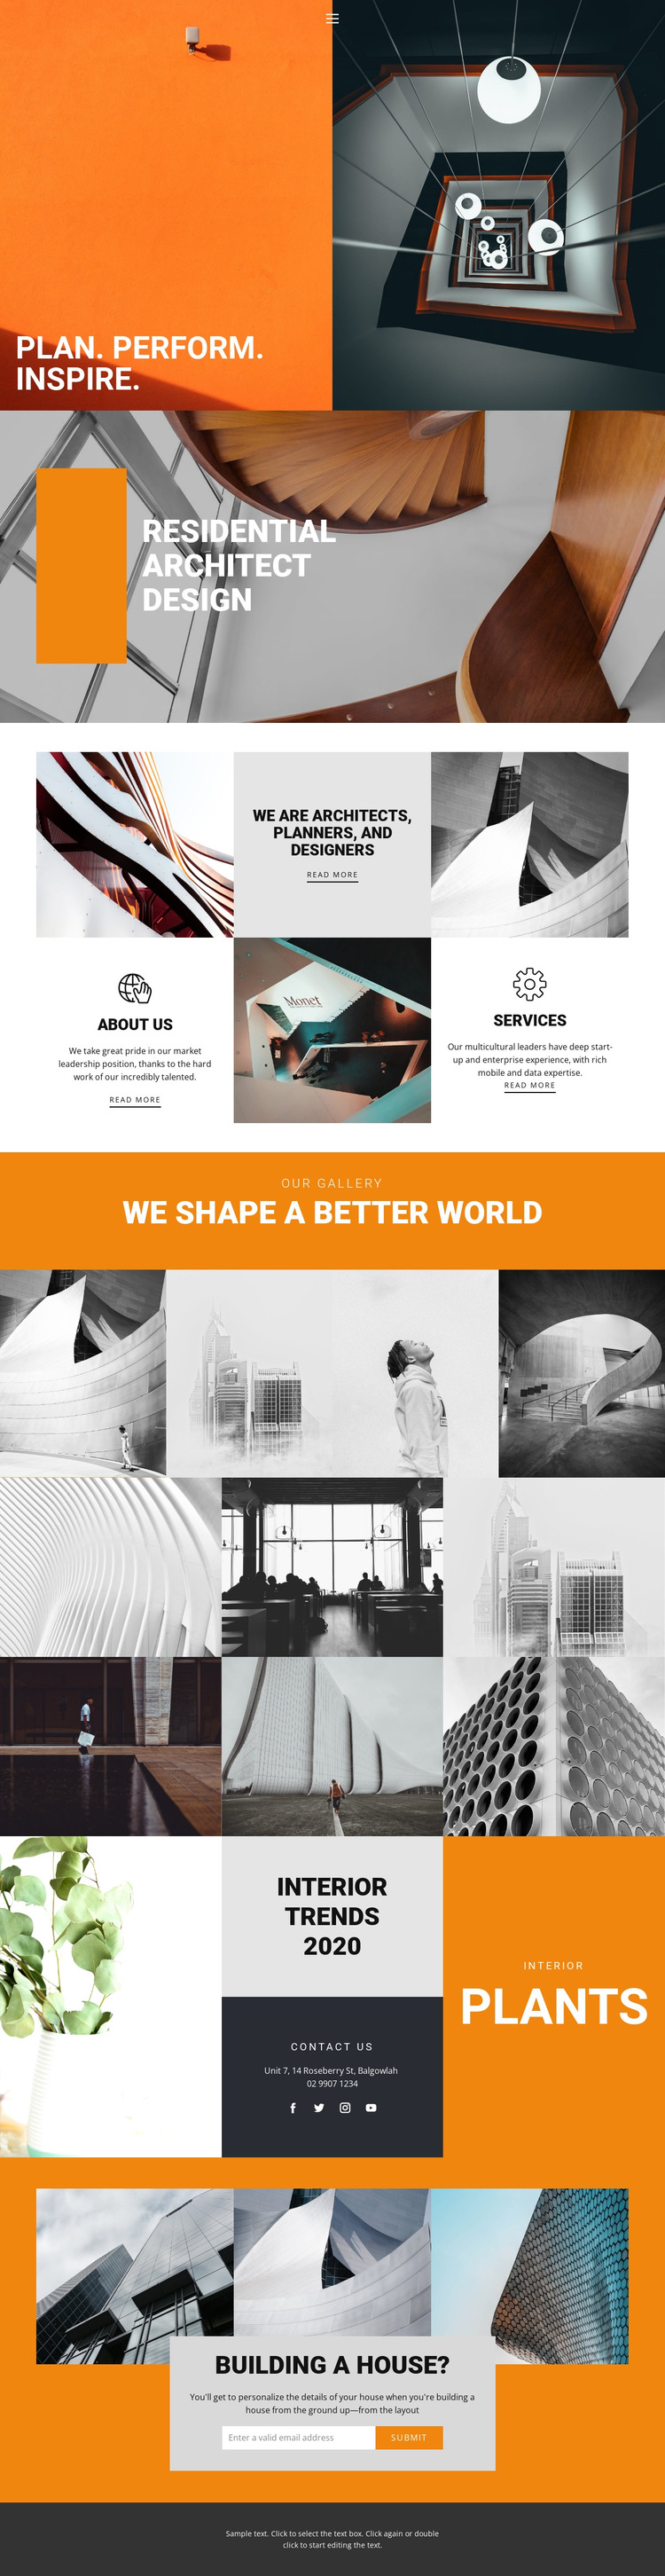 Plan. Perform. Inspire. Html Template